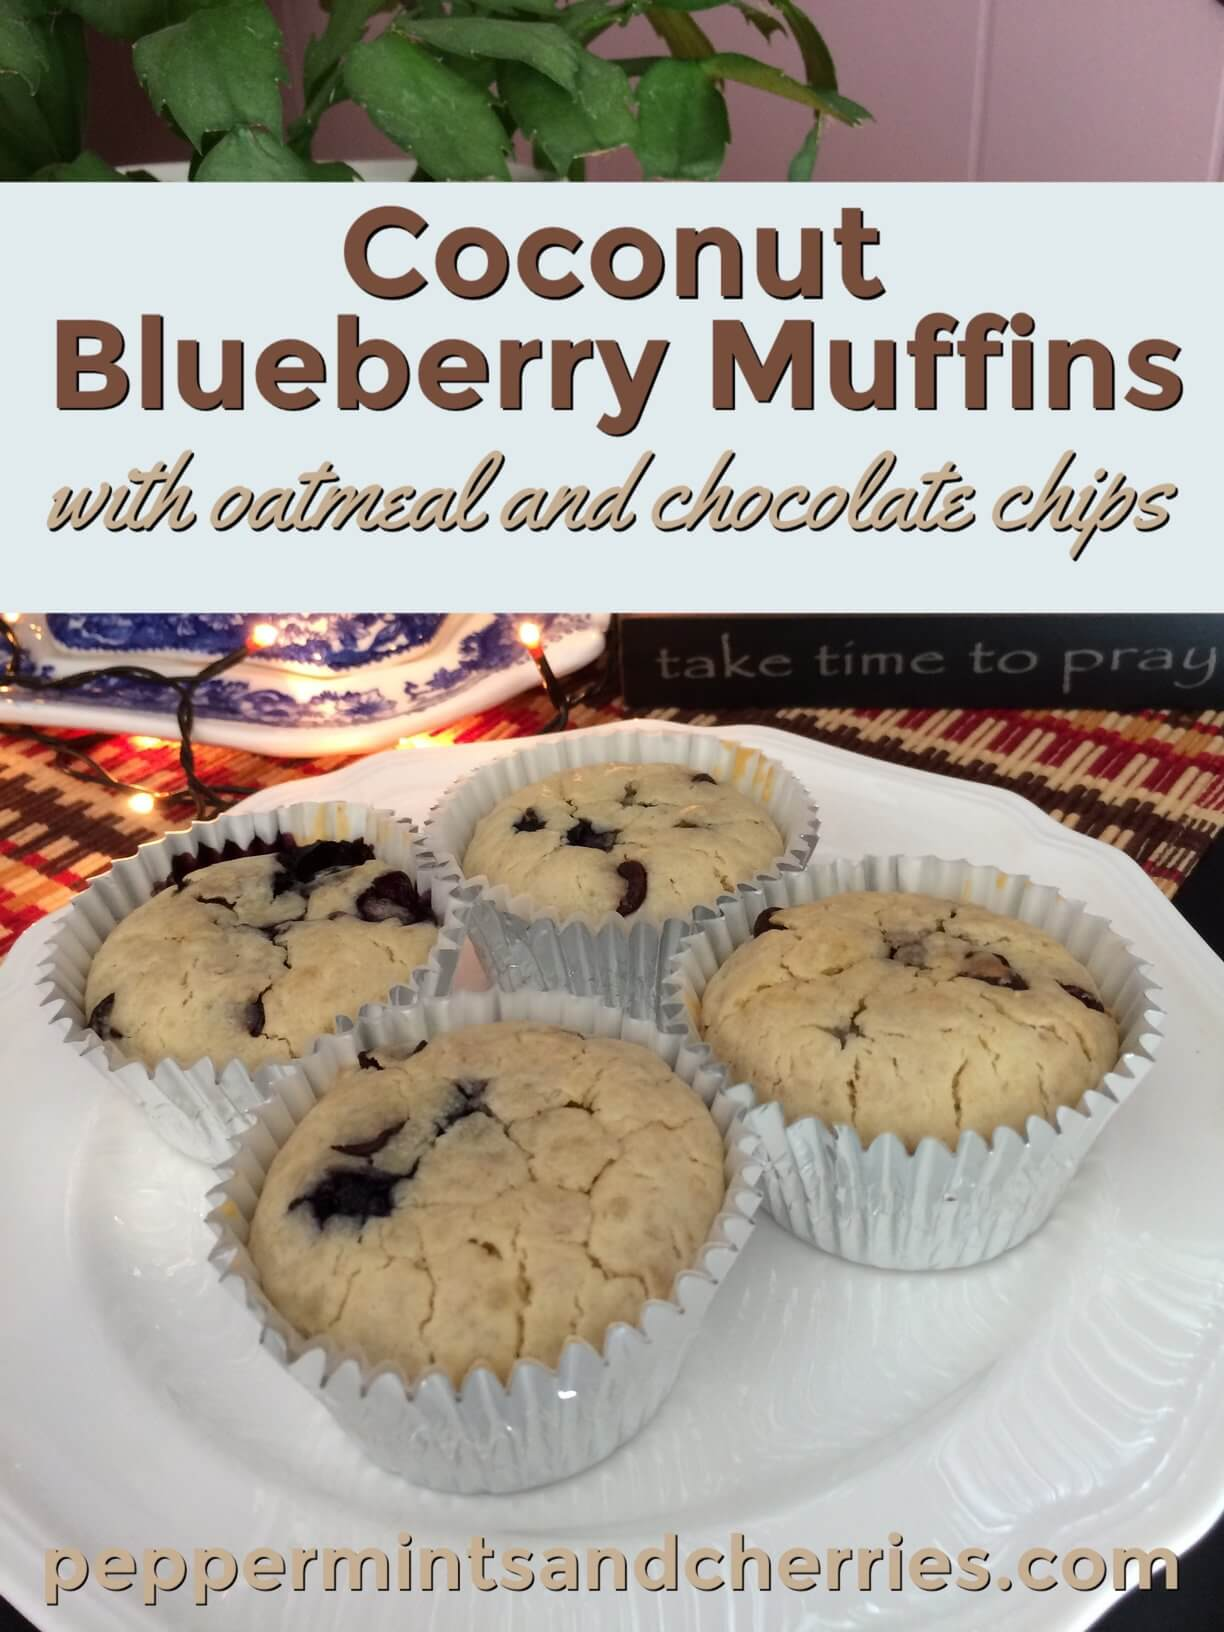 Coconut Blueberry Muffins with Oatmeal and Chocolate Chips